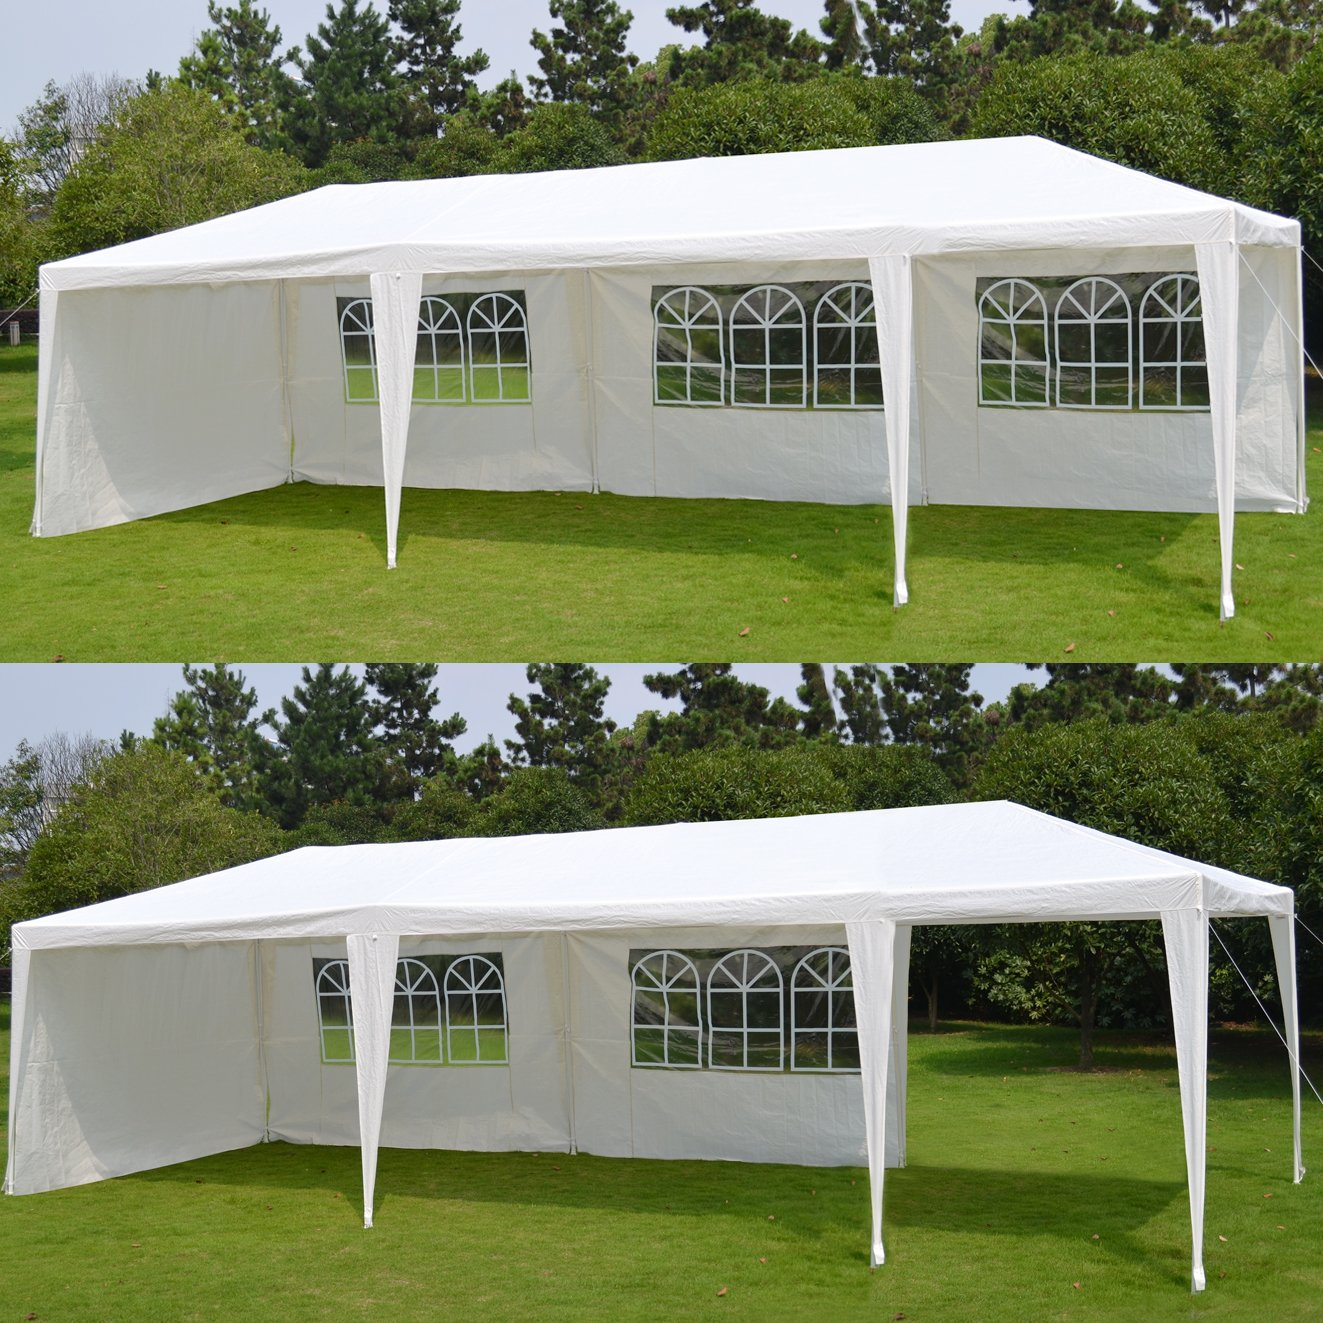 Amazon.com BenefitUSA Wedding Party Tent 10u0027X30u0027 C&ing Outdoor Easy Set Gazebo BBQ Pavilion Canopy Garden u0026 Outdoor & Amazon.com: BenefitUSA Wedding Party Tent 10u0027X30u0027 Camping Outdoor ...